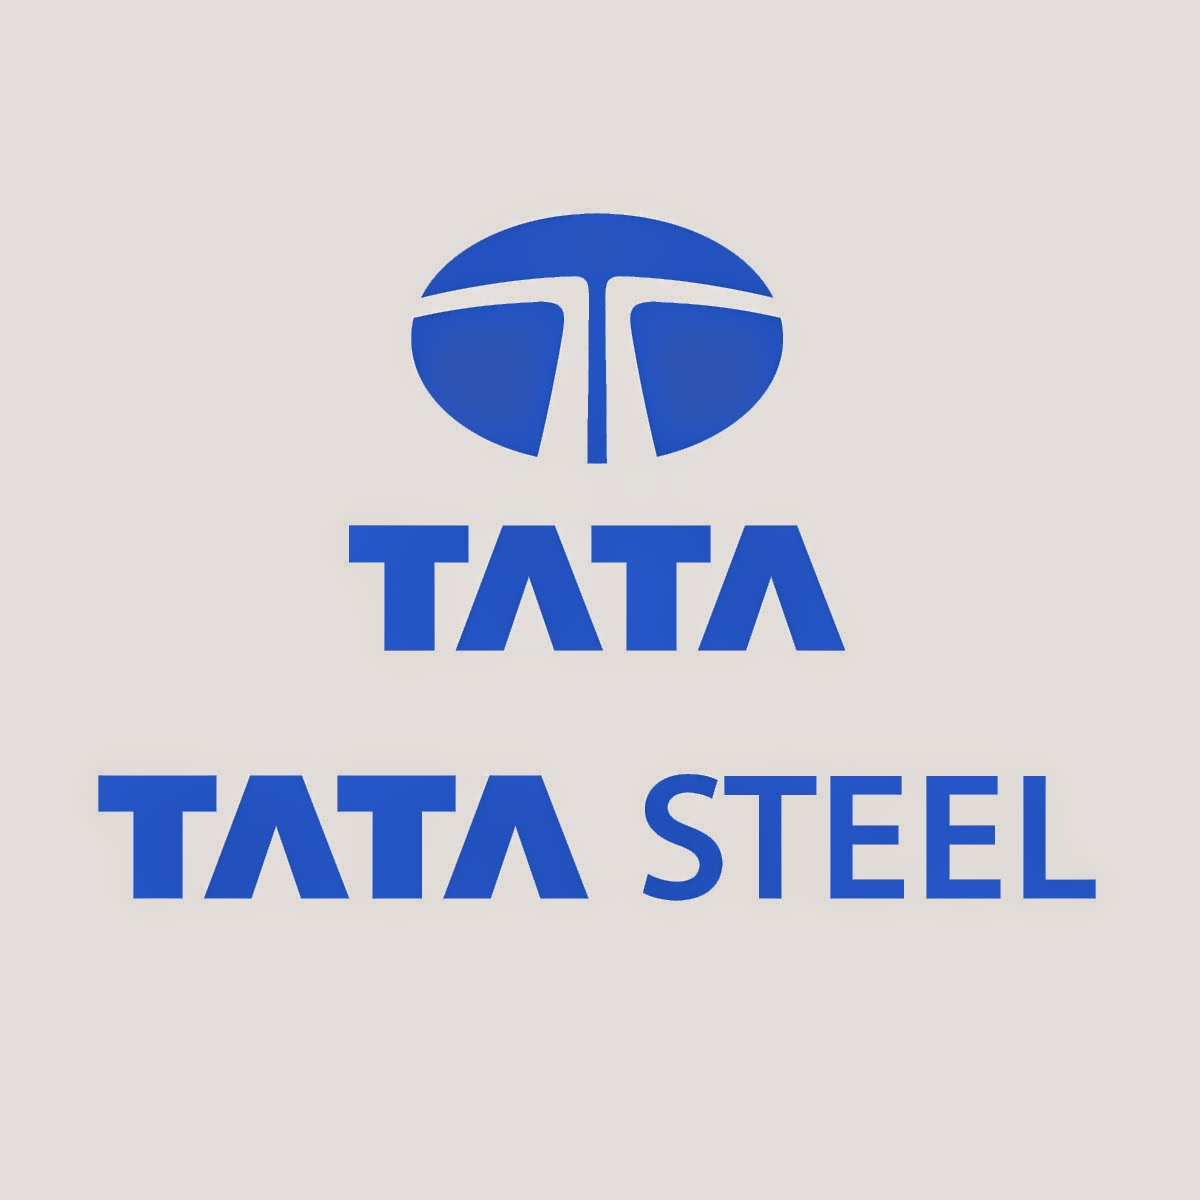 tata steel hr policy About the company: tata consultancy services limited (tcs) tata consultancy services limited (tcs): is a software services consulting company, one of the largest provider of information technology and business process outsourcing services in asia.